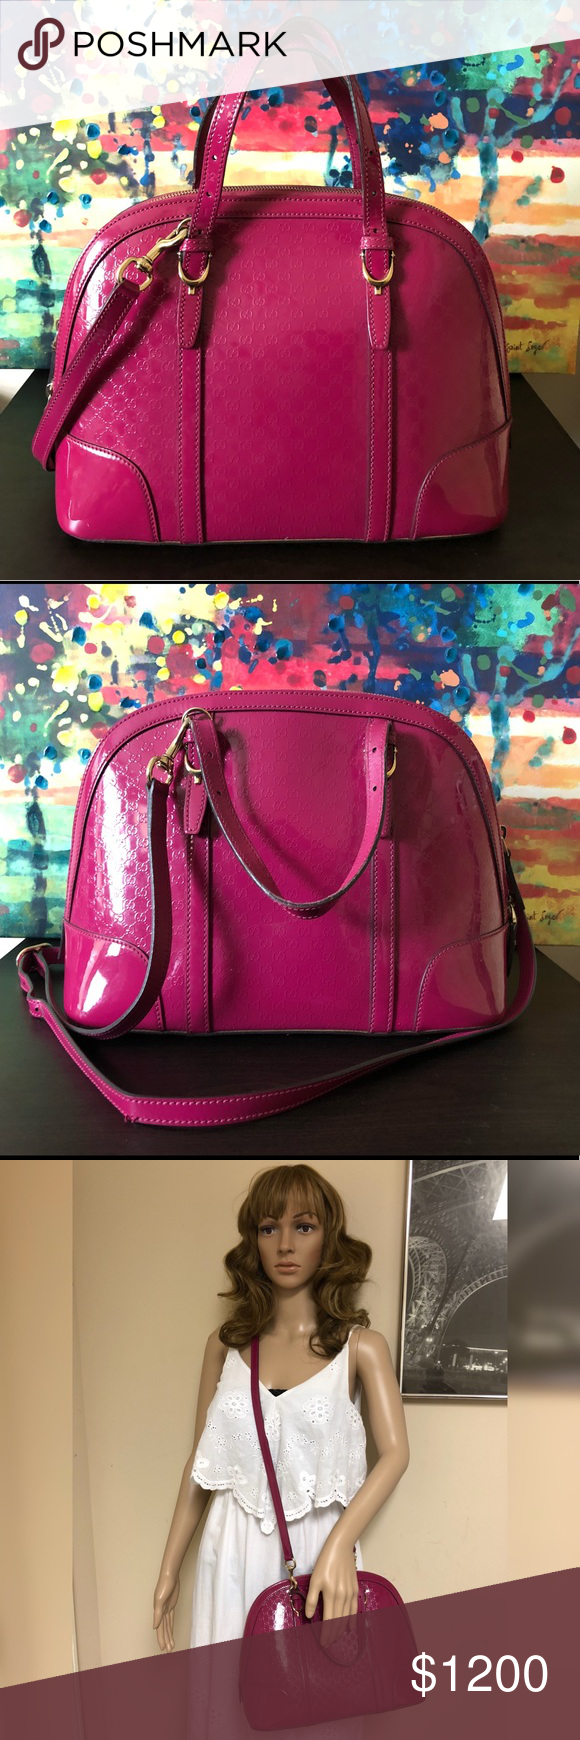 fb9d89e75cf Gucci Nice Microguccissima Patent Leather Pink Bag Add a pop of color to  your look with